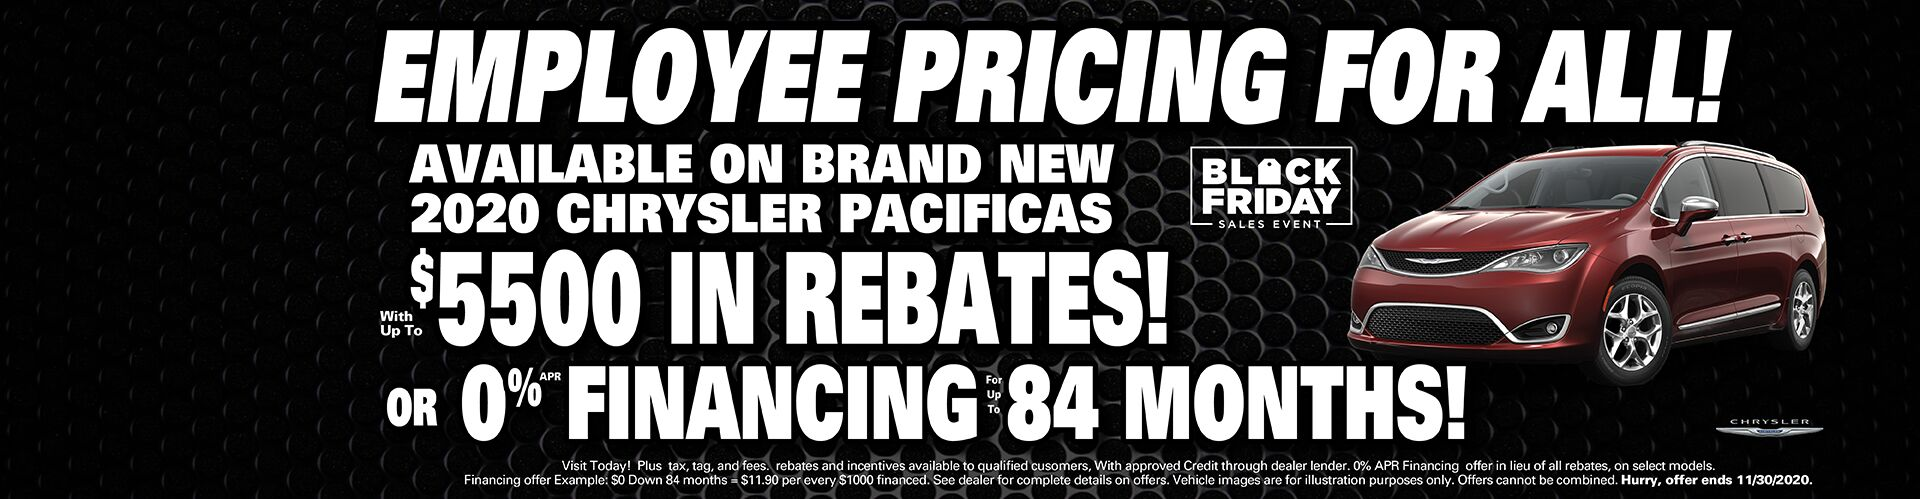 Employee Pricing For All!!